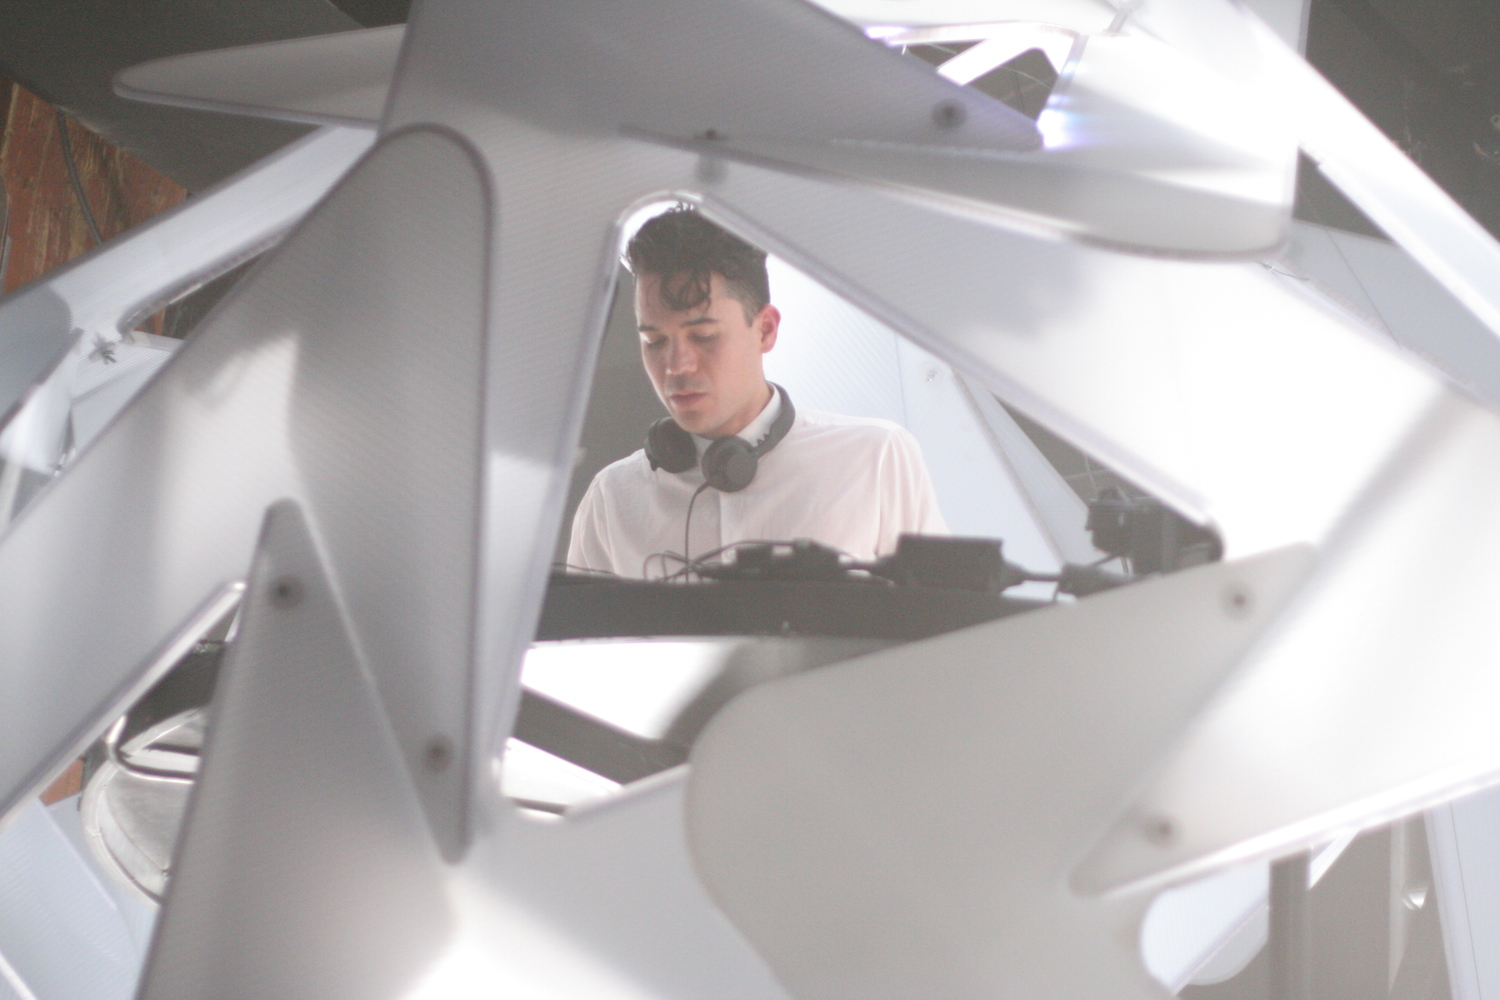 Matthew Dear presents Audion, in a shipping container of LED triangles